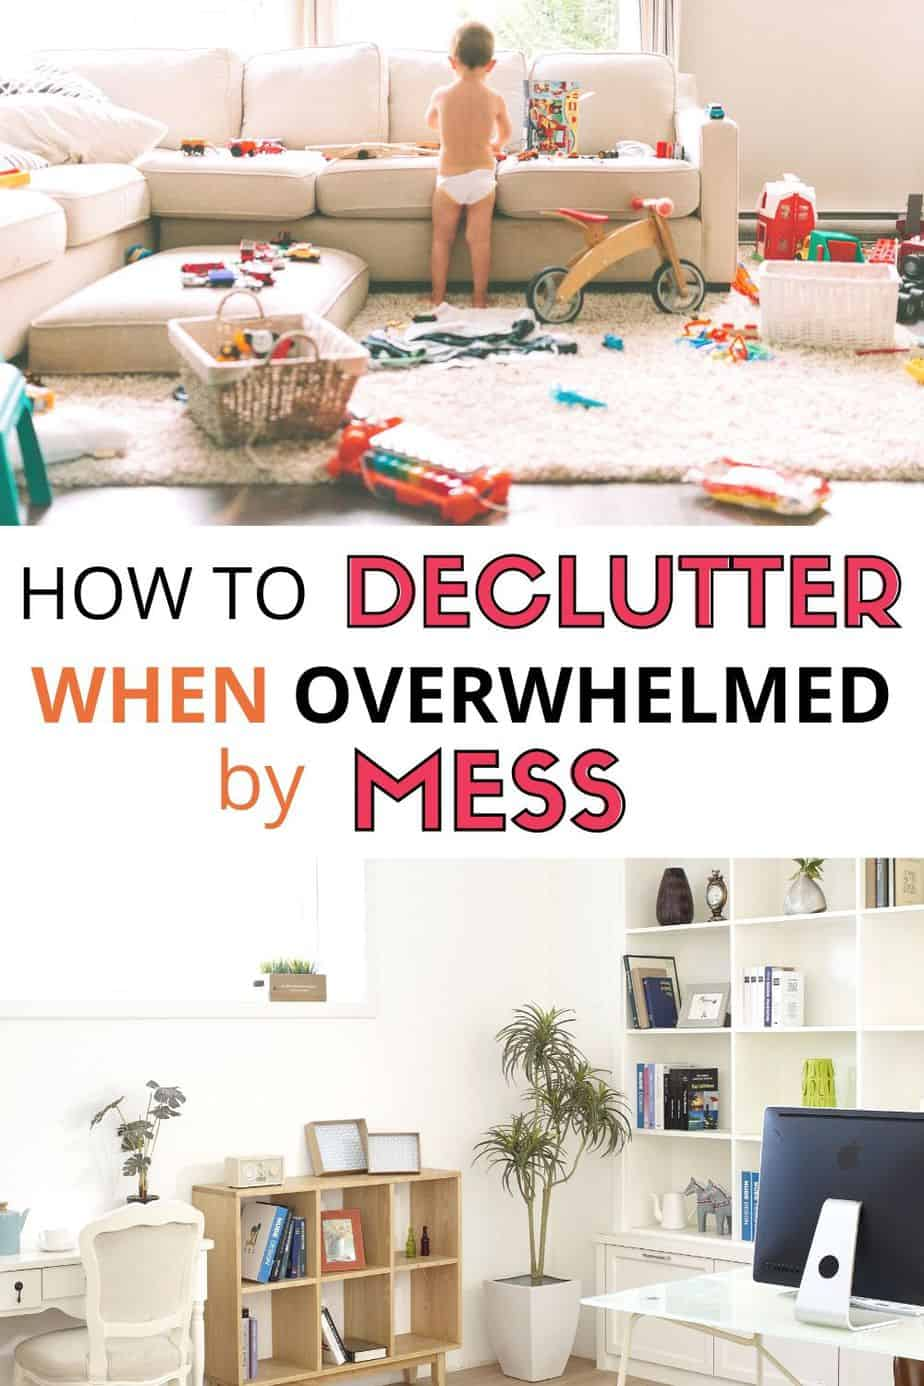 How to declutter when overwhelmed by mess